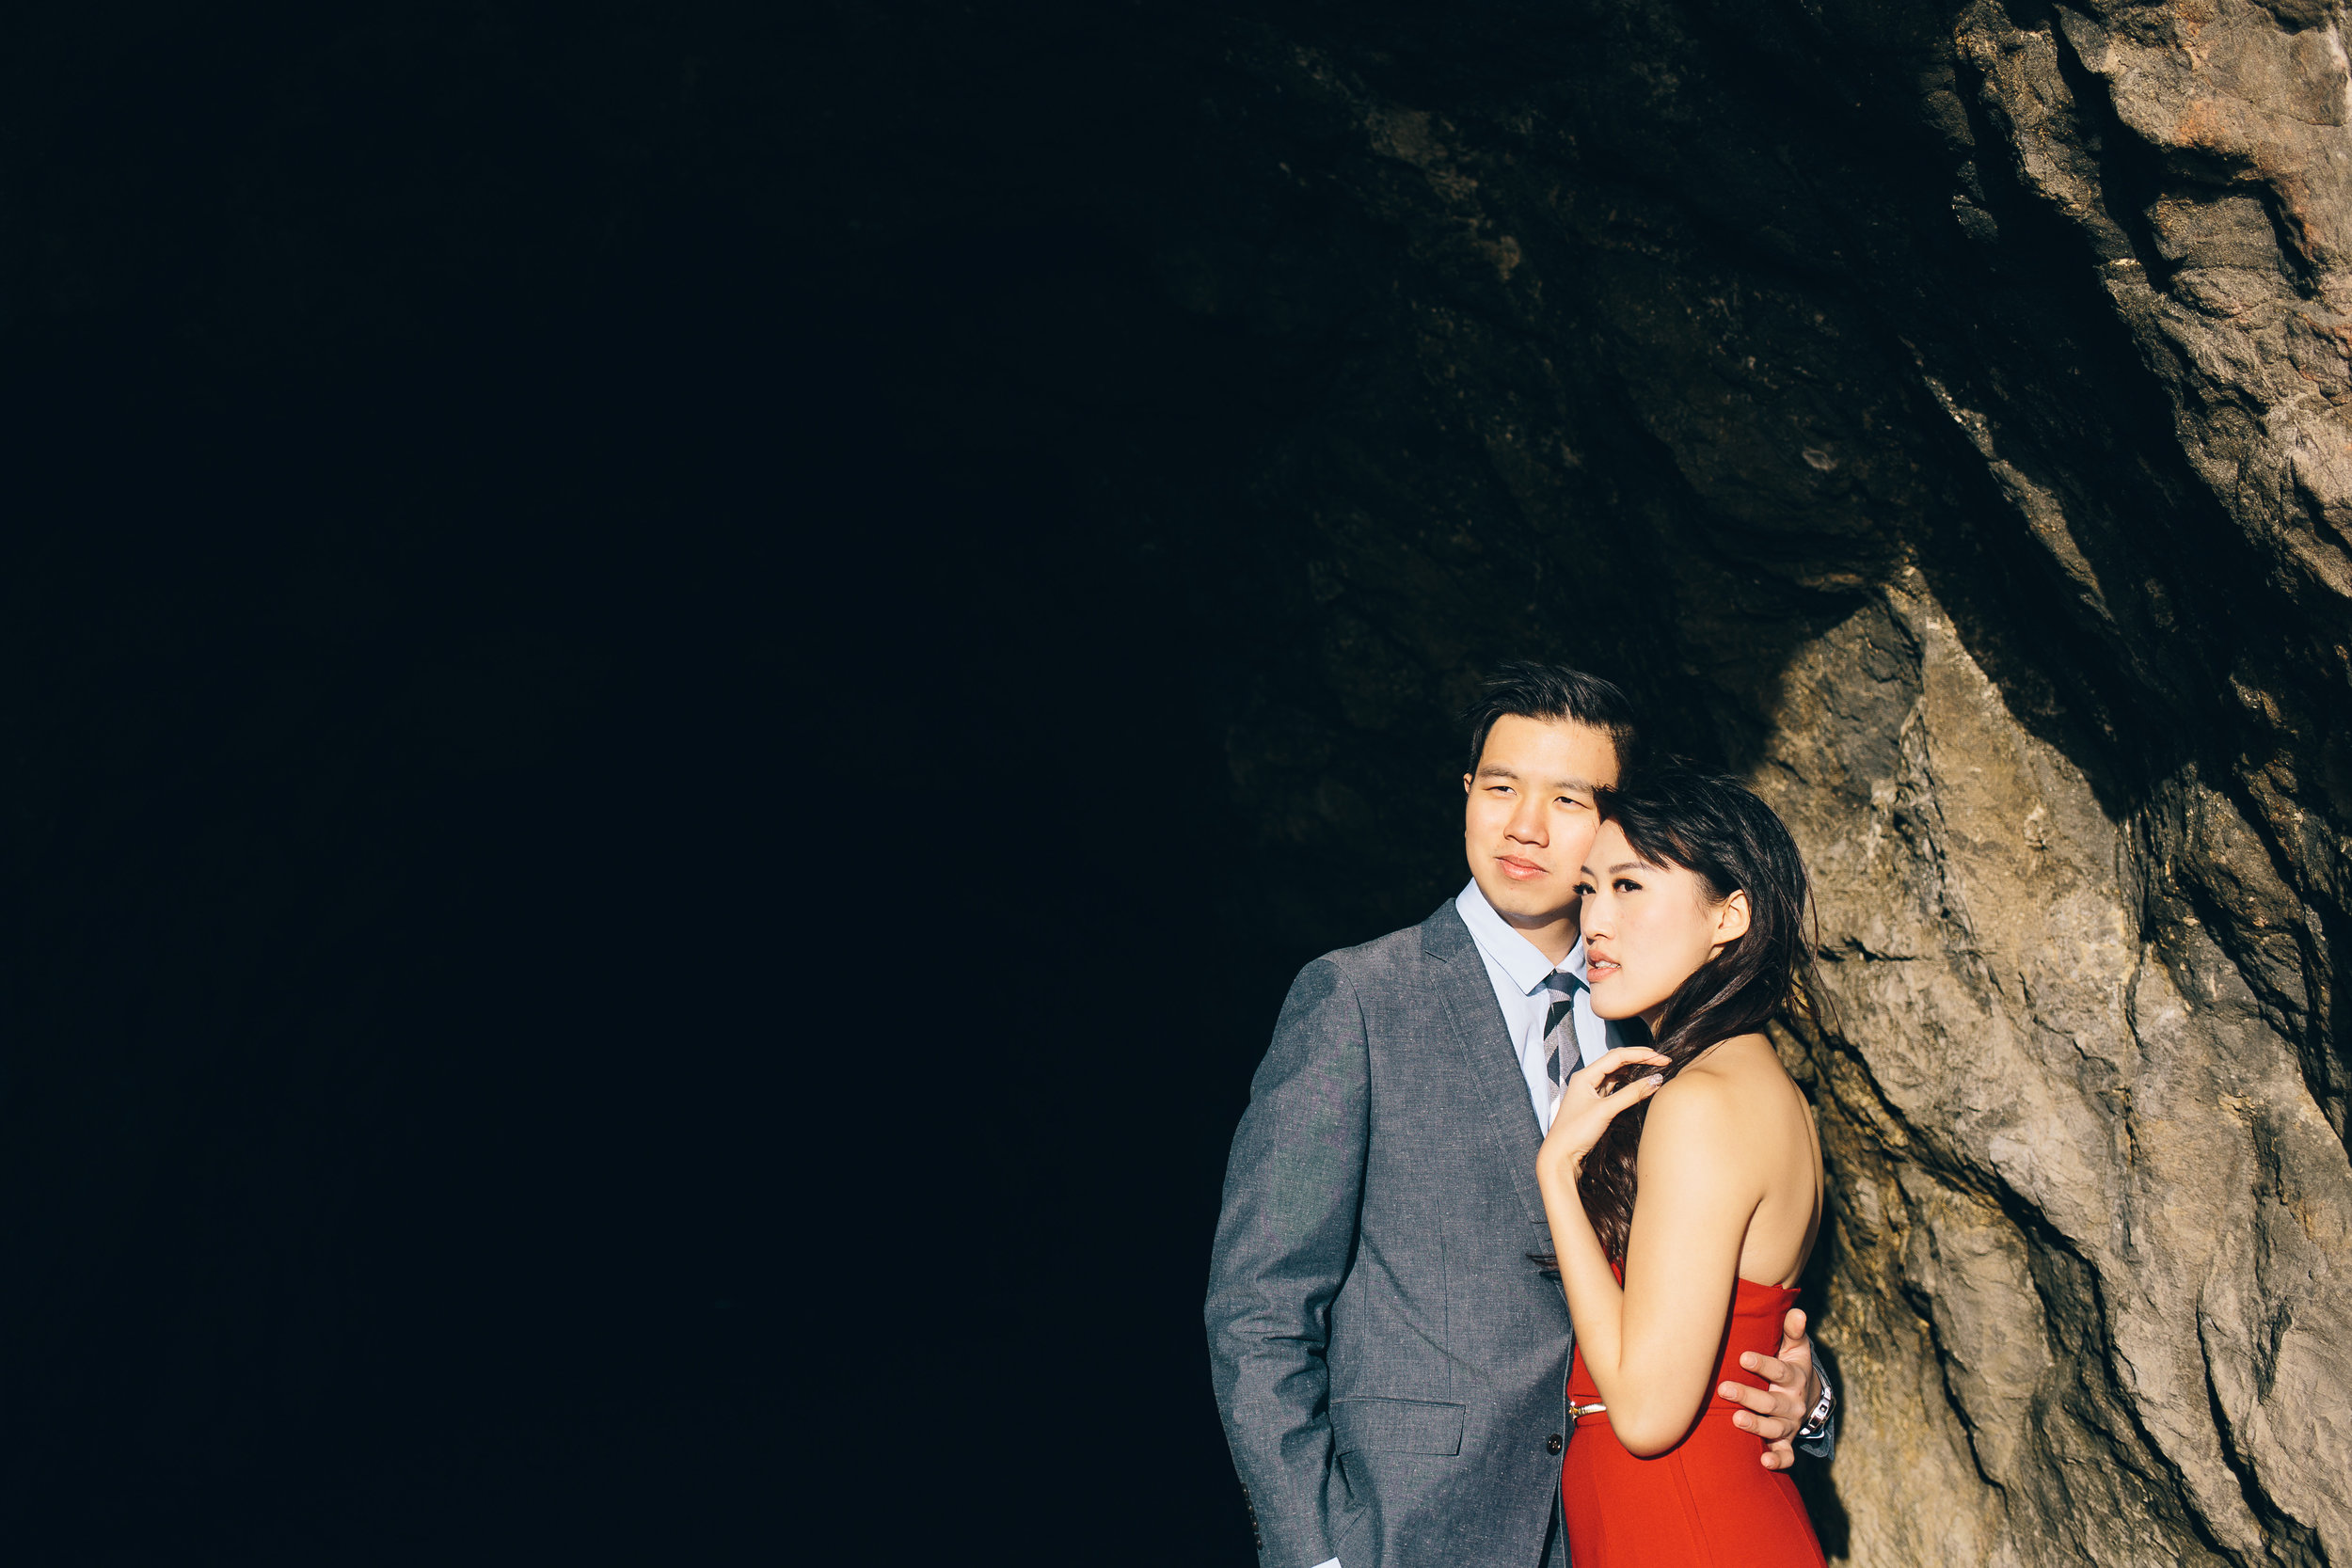 Pre-Wedding Photos in San Francisco by JBJ Pictures Pre-Wedding Photographer, Engagement Session and Wedding Photography in Napa, Sonoma, SF Bay Area (34).jpg